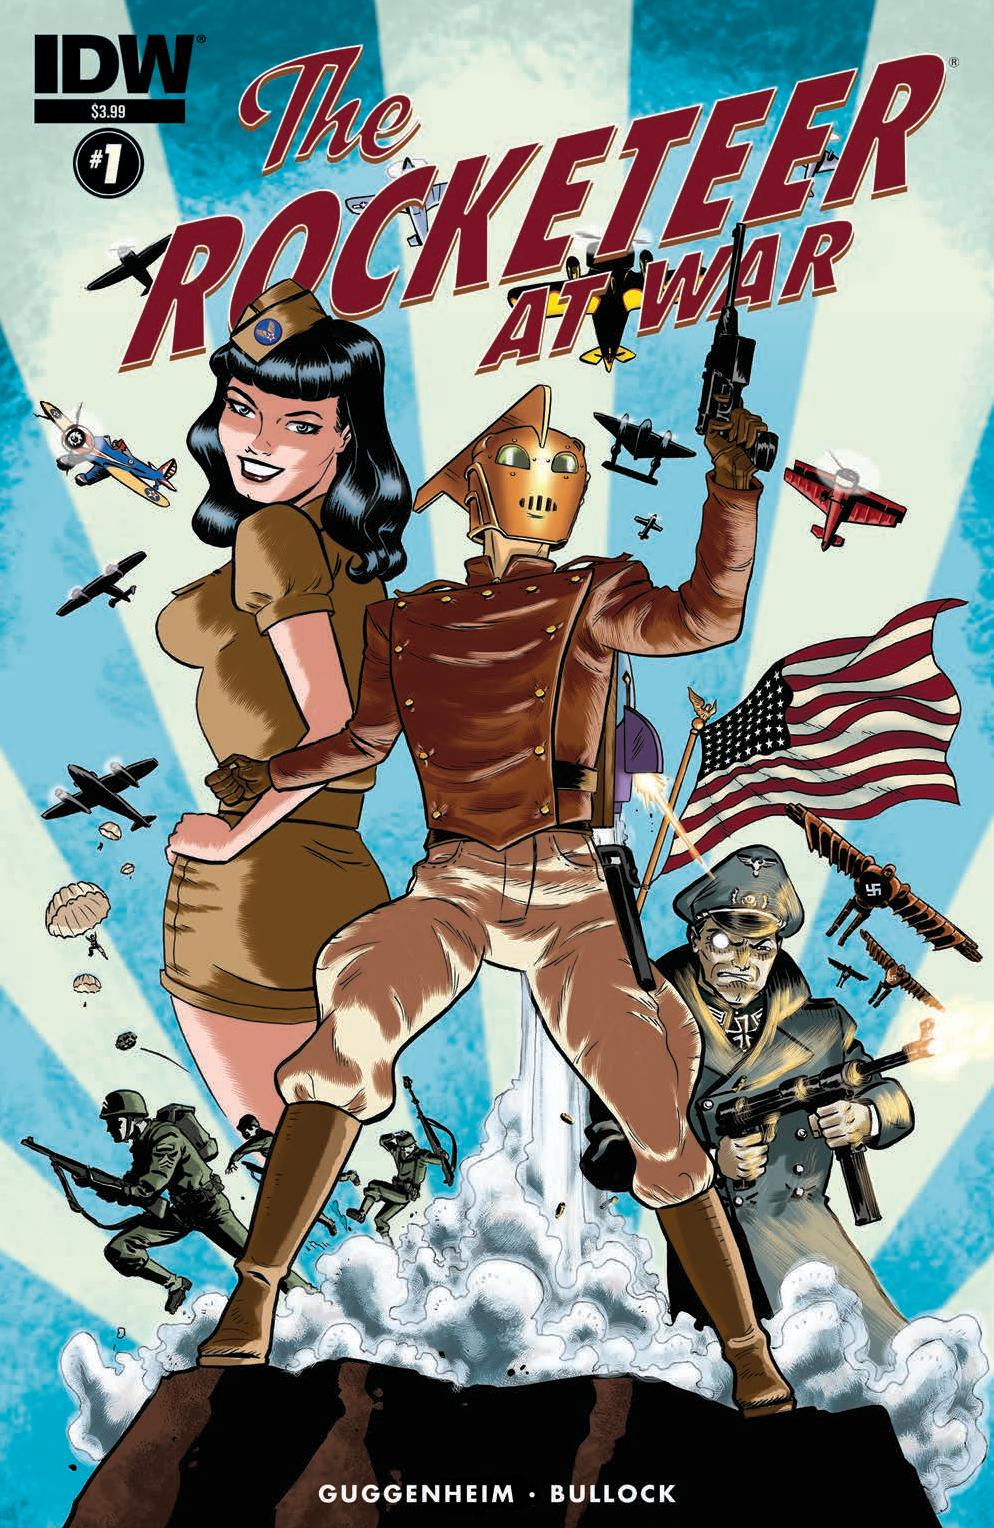 The Rocketeer at War #1 Cover